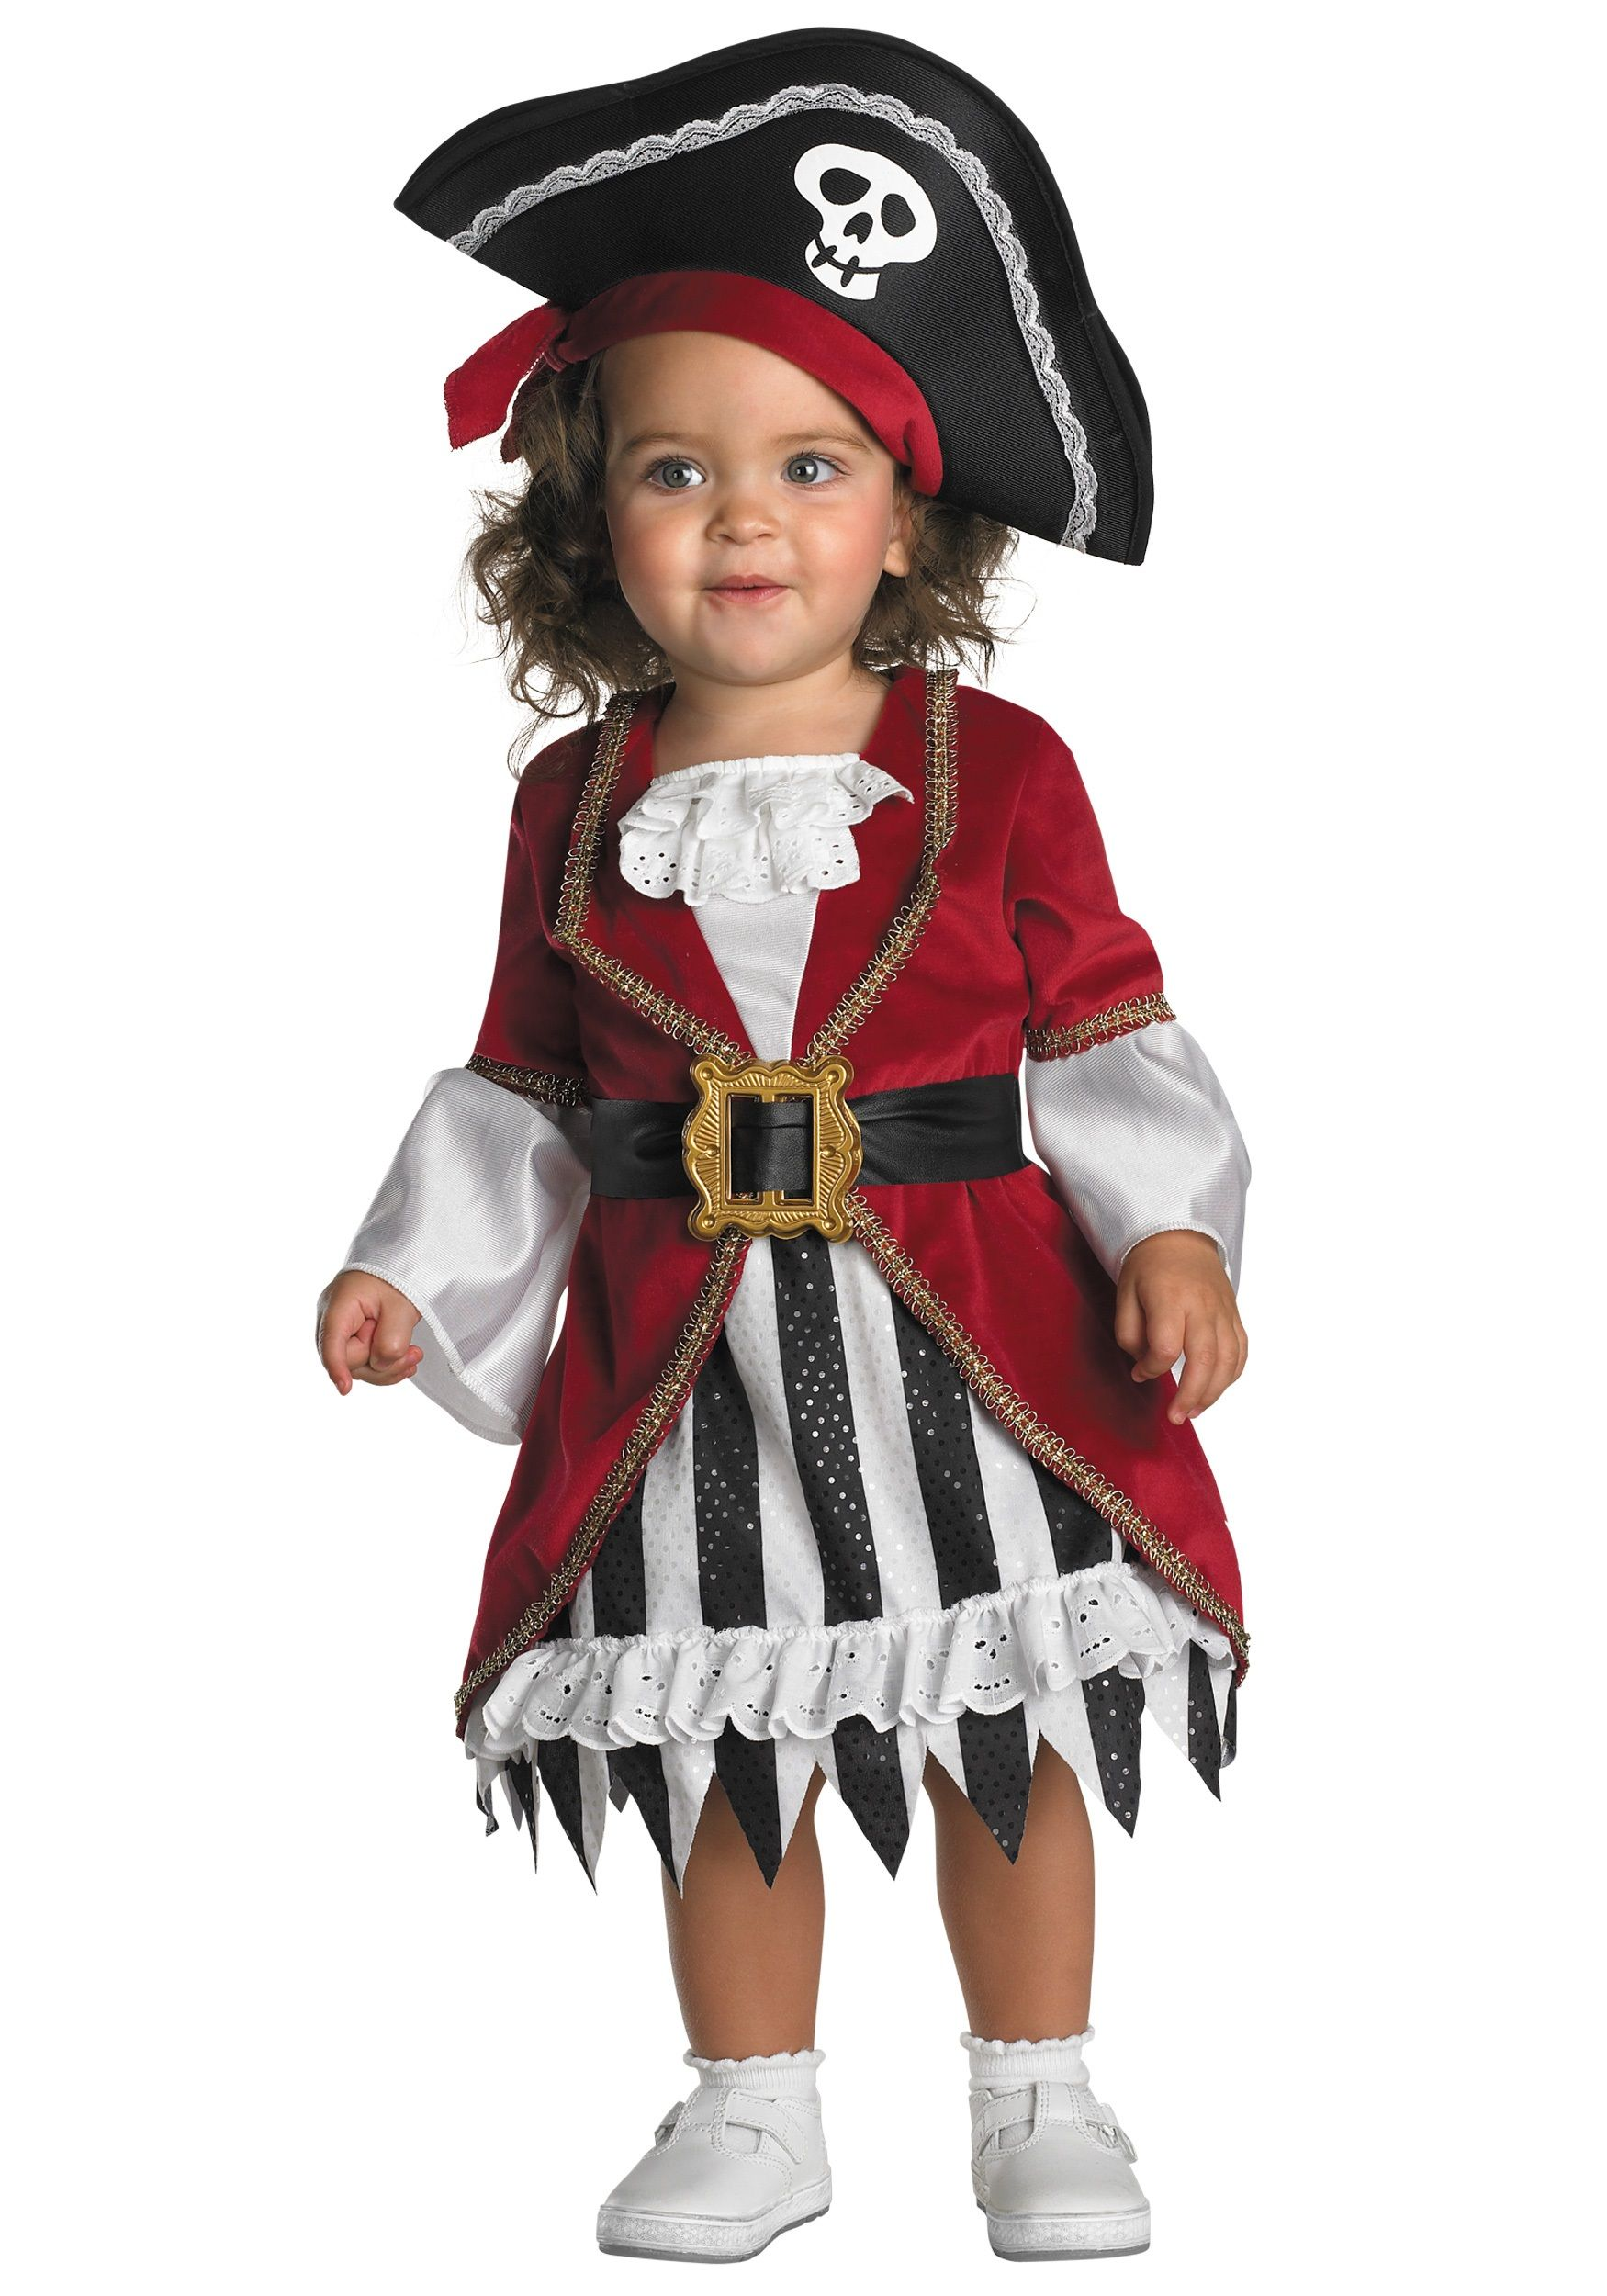 7d804a70a67 little girl halloween costume | ... Toddler Costume Ideas Historical ...